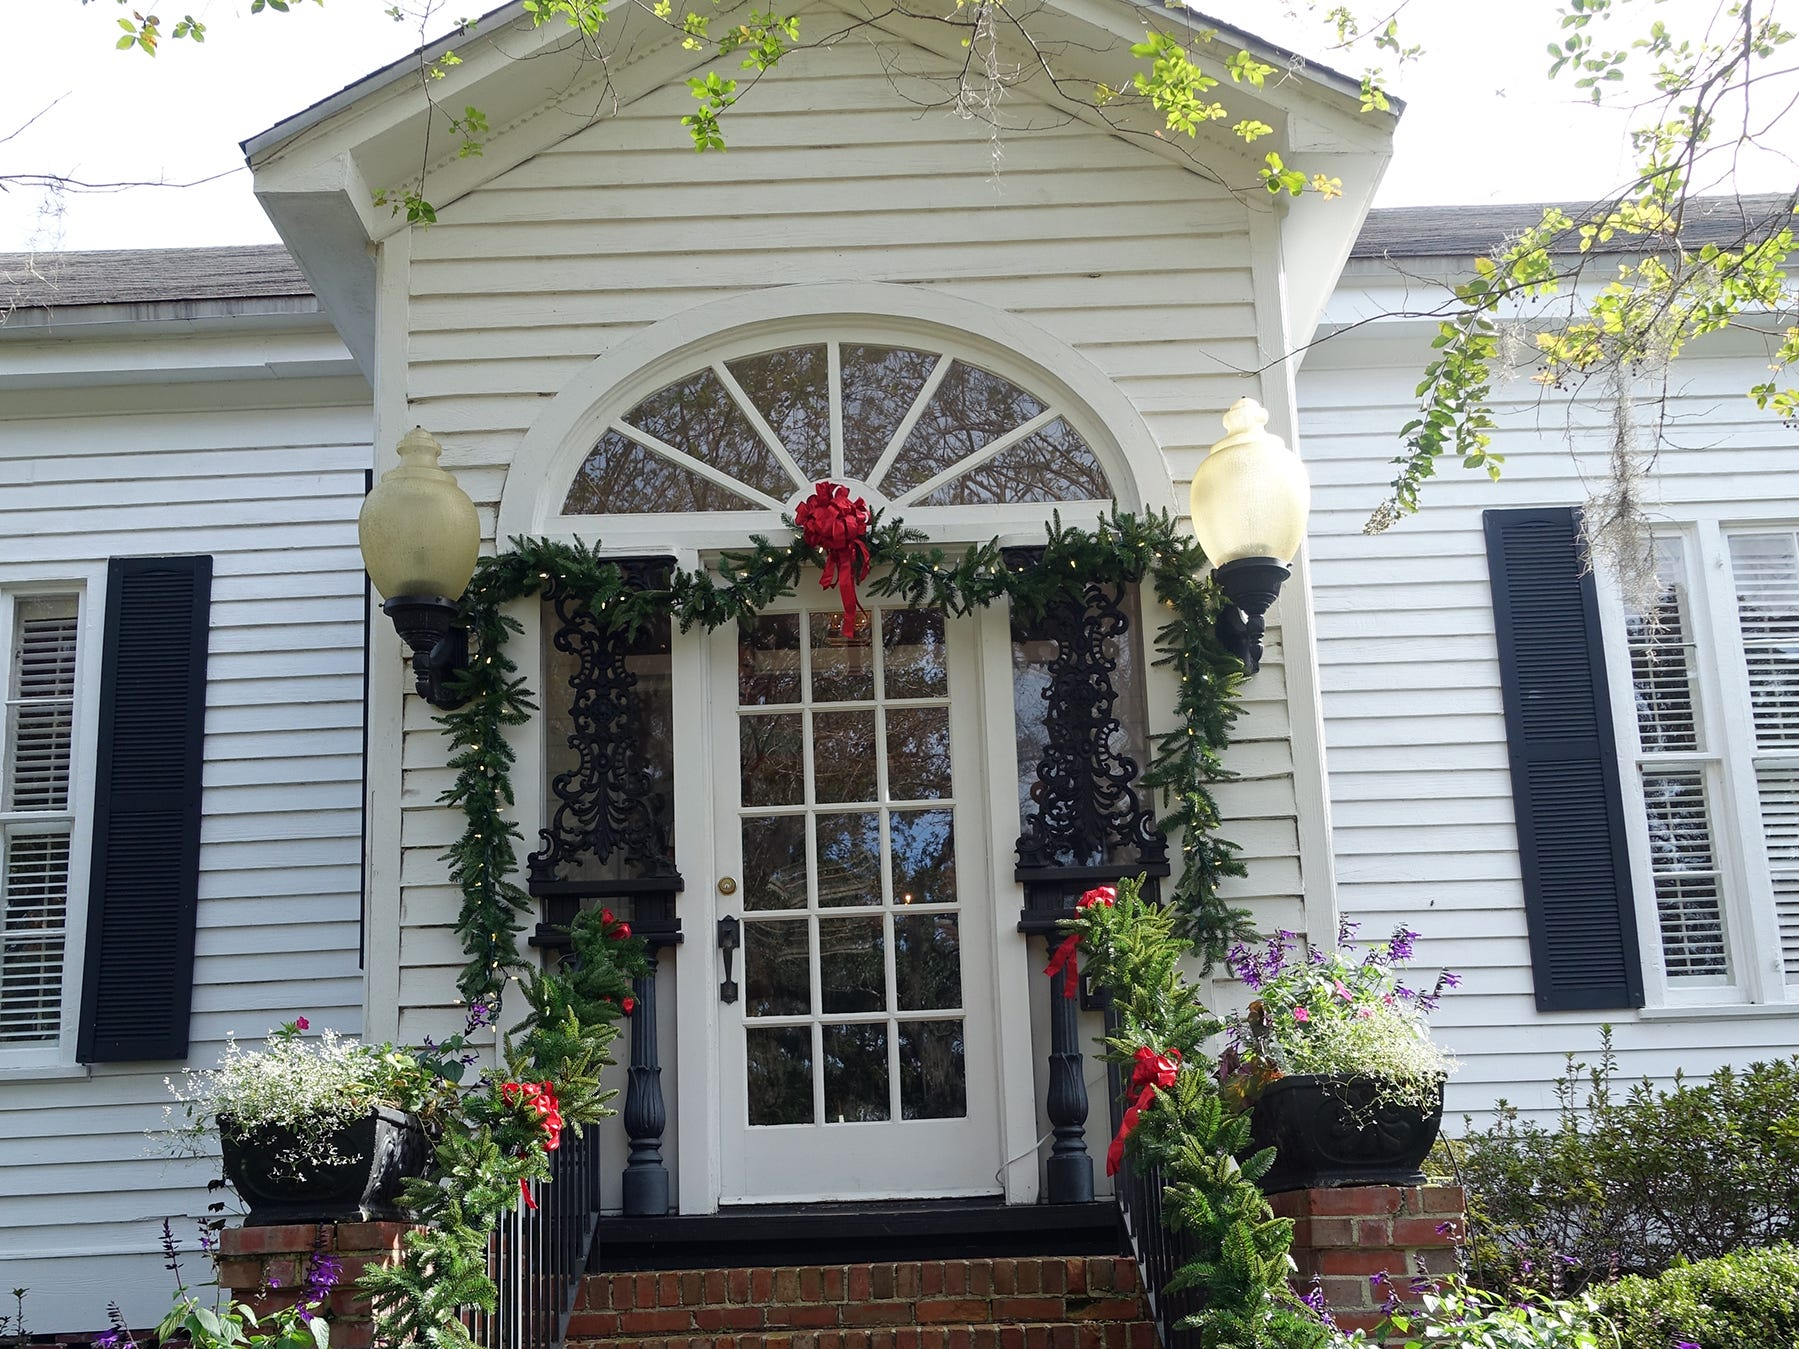 Tallahassee Garden Club decked out for Christmas Tea